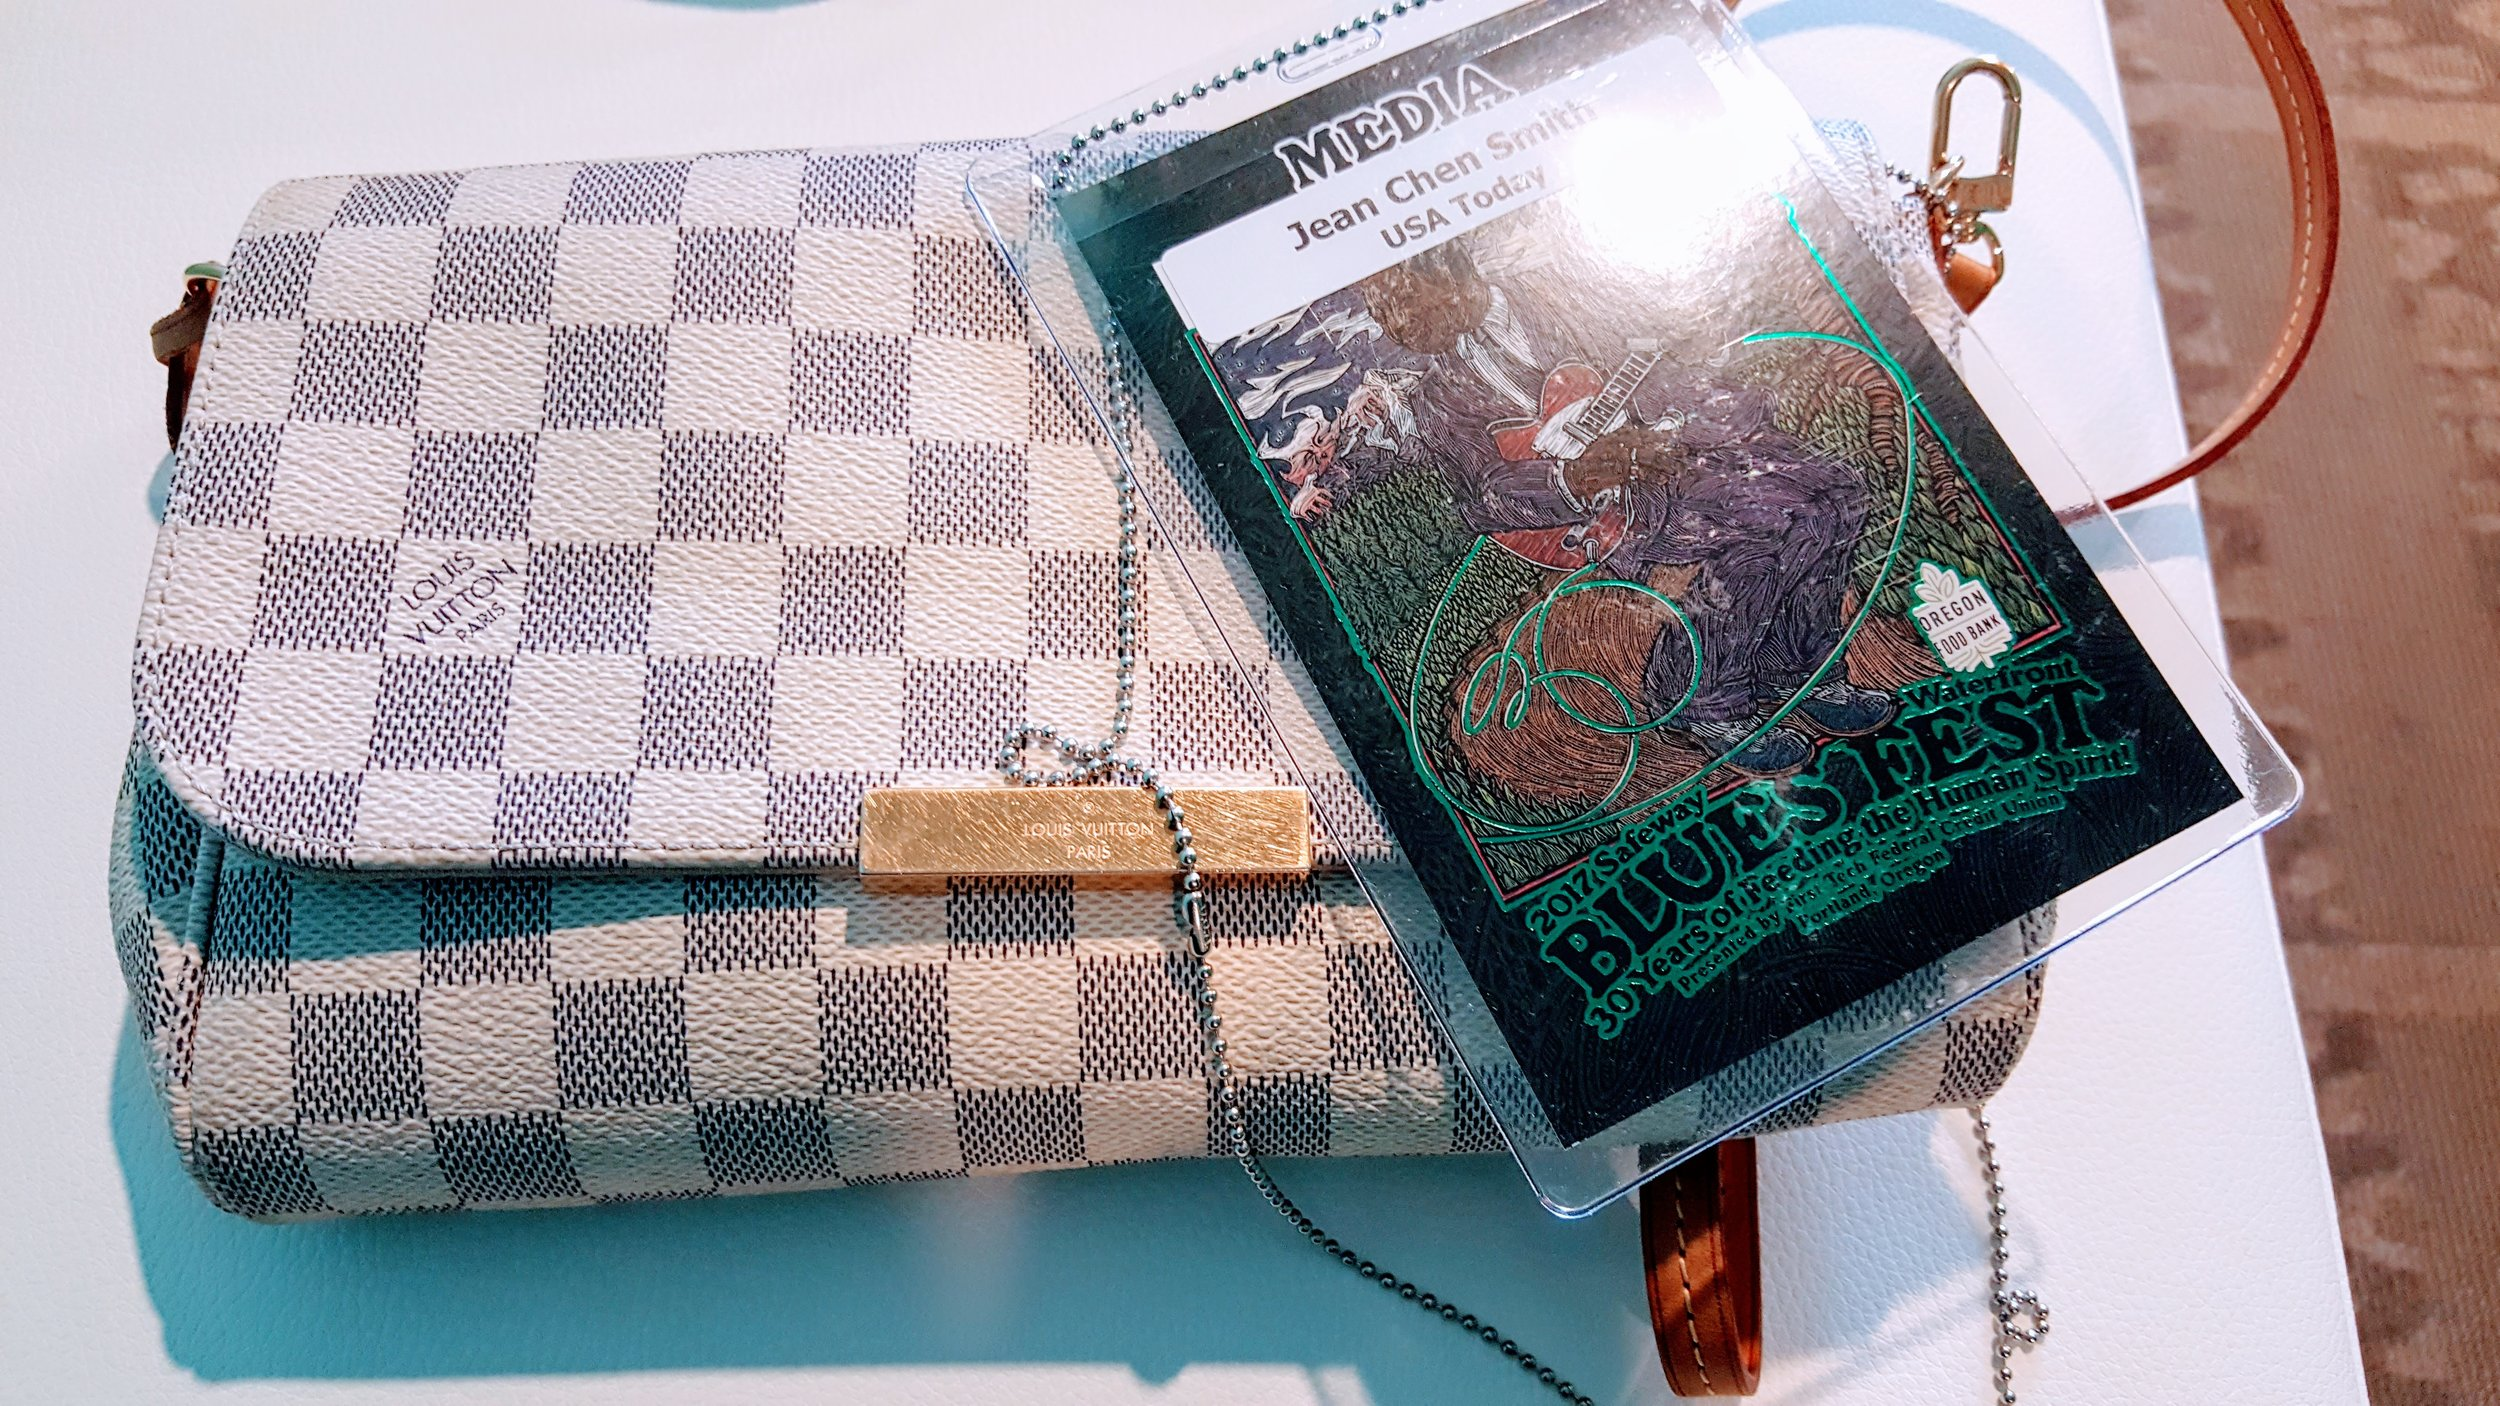 Media pass and my favorite LV